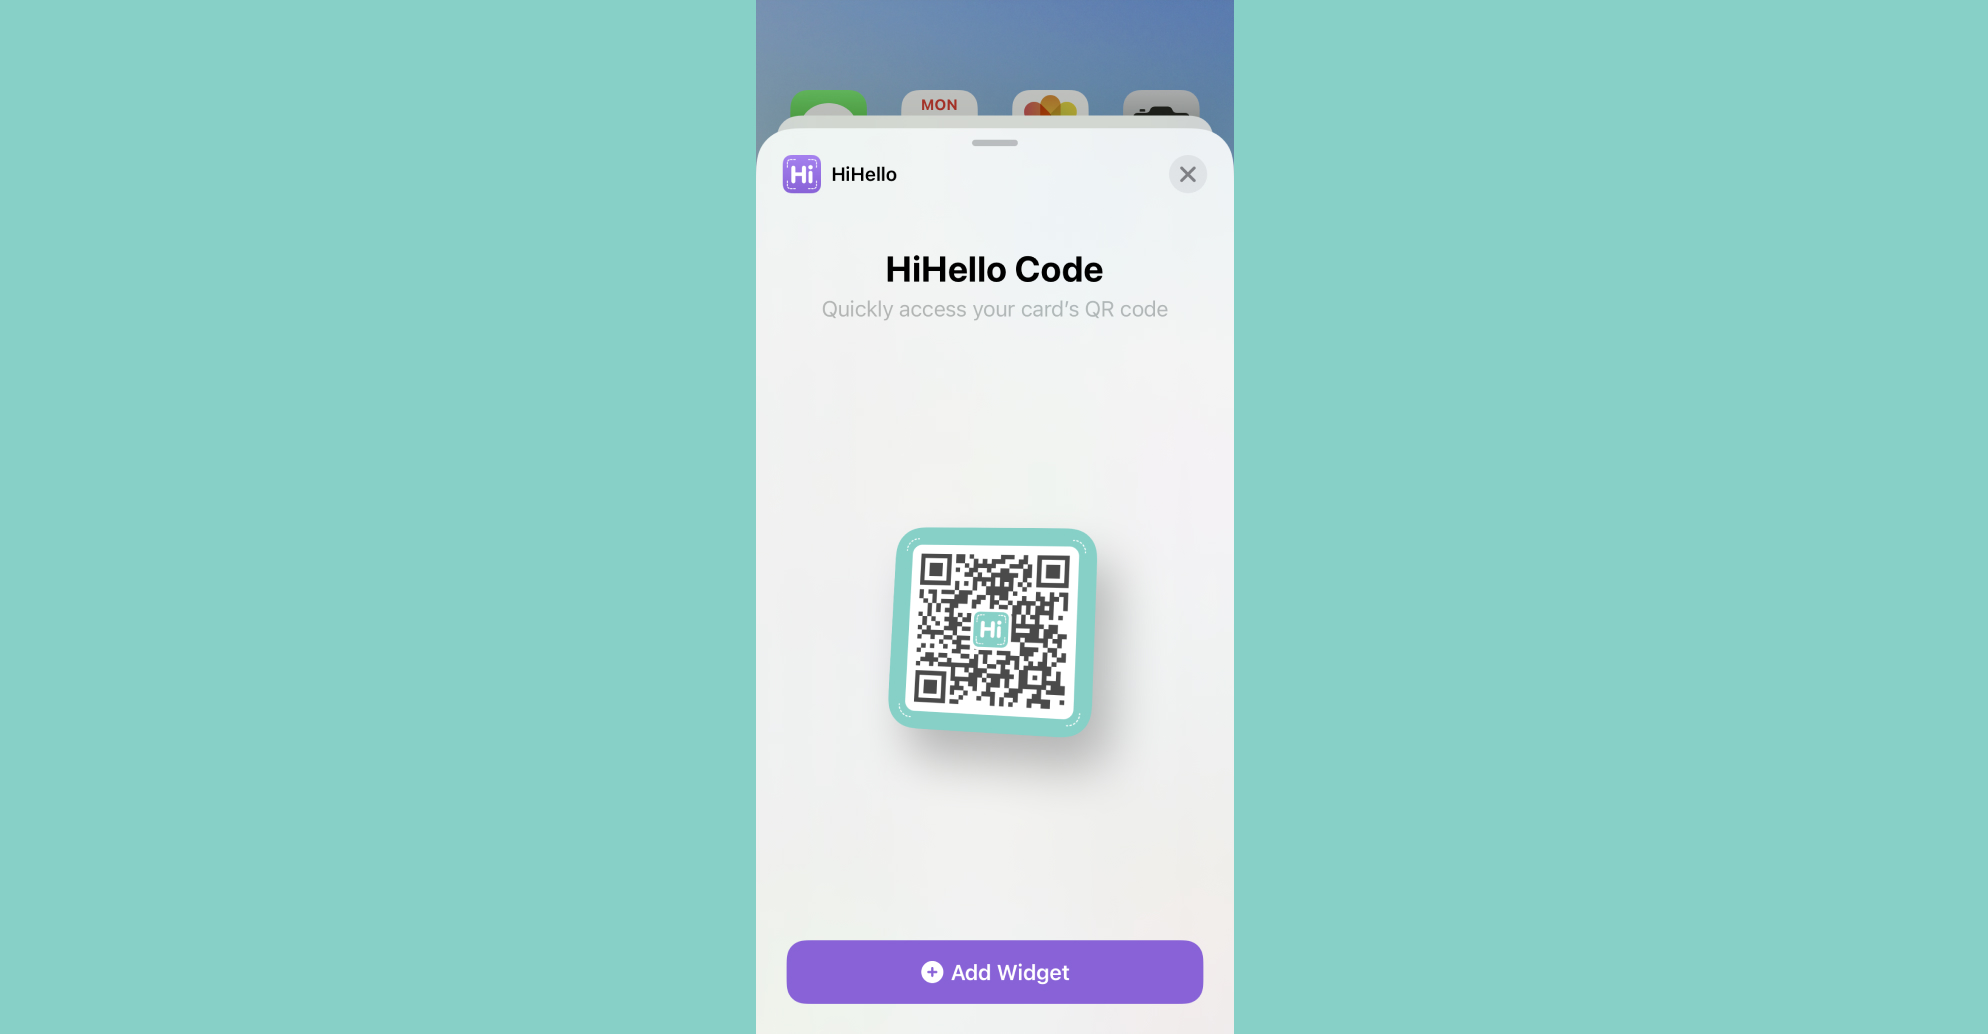 Add the HiHello QR code widget to your Home Screen